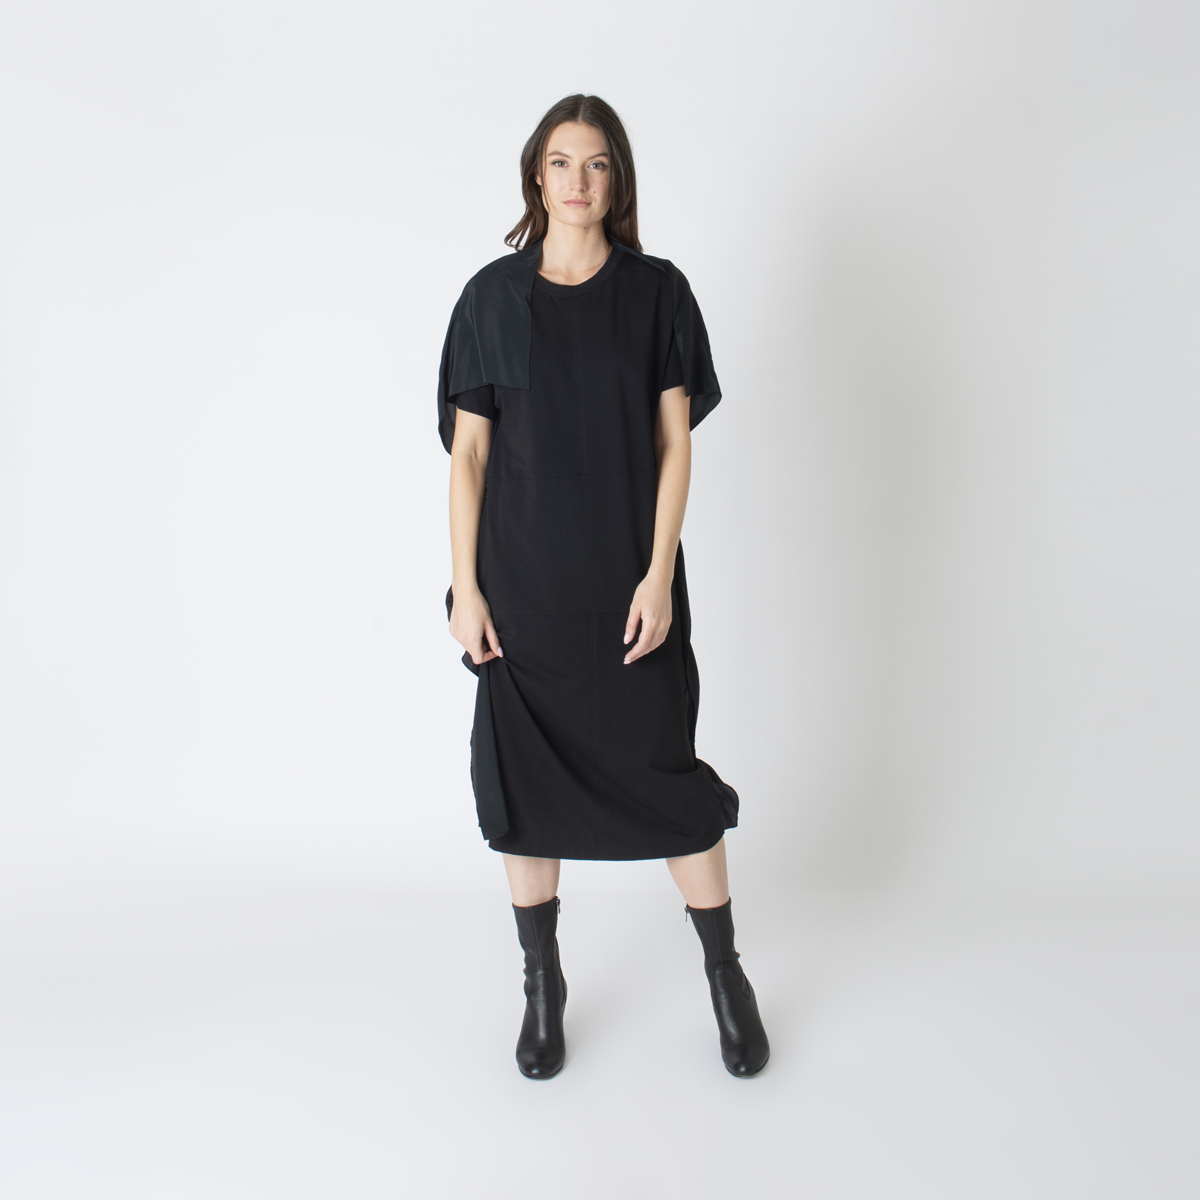 3.1 Philip Lim Dress – New With Tags